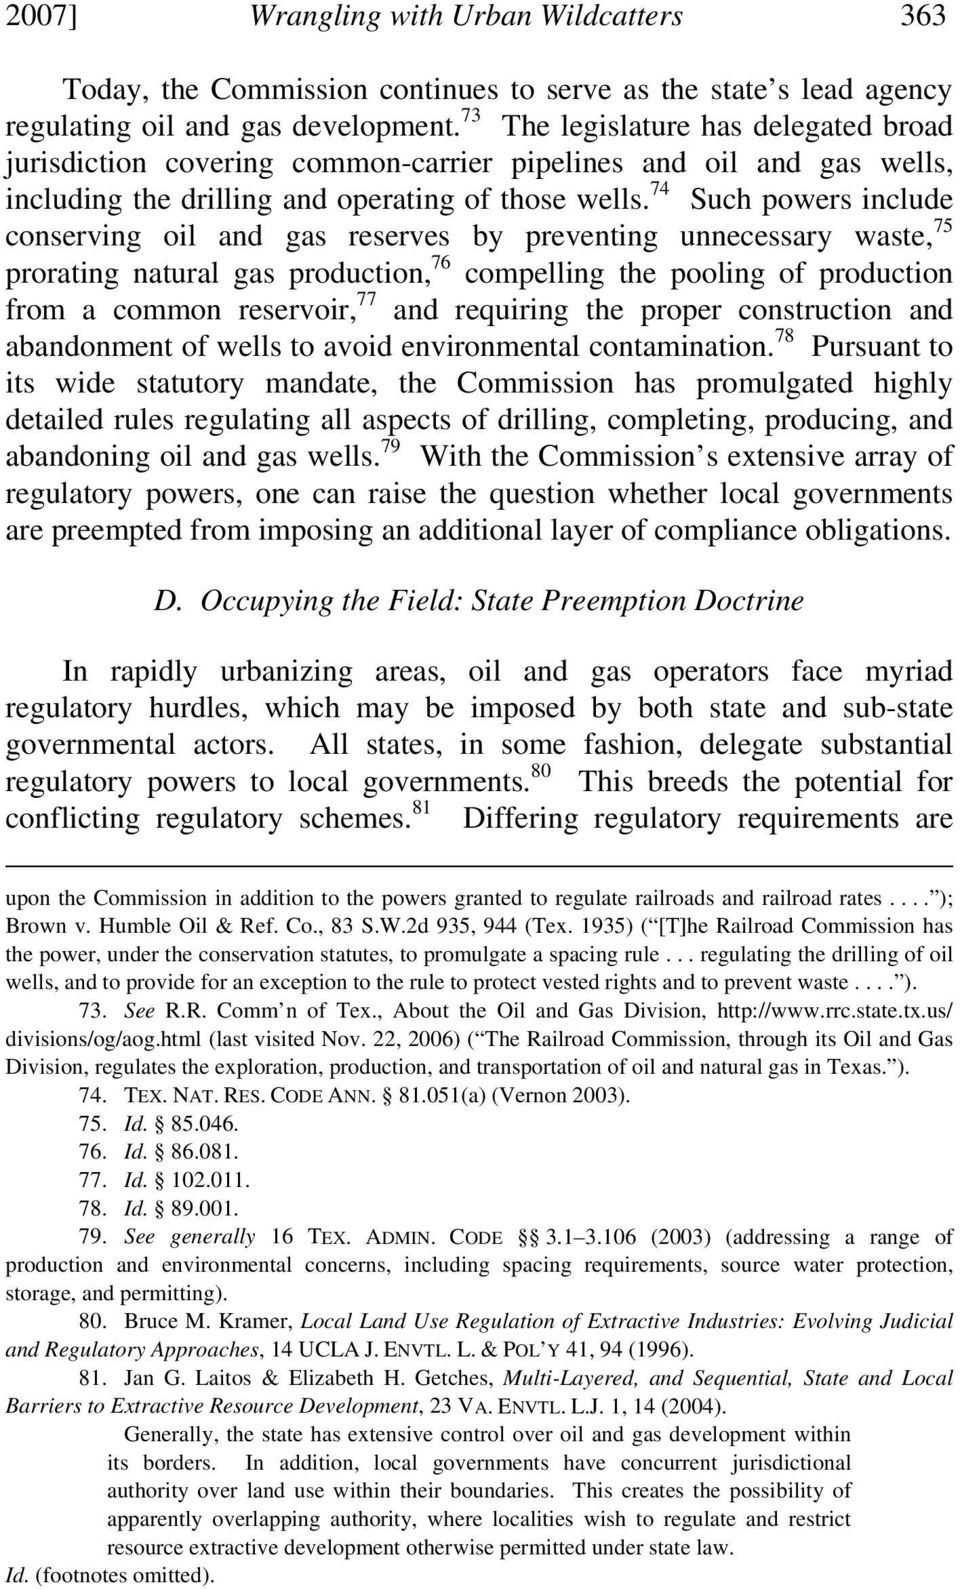 74 Such powers include conserving oil and gas reserves by preventing unnecessary waste, 75 prorating natural gas production, 76 compelling the pooling of production from a common reservoir, 77 and